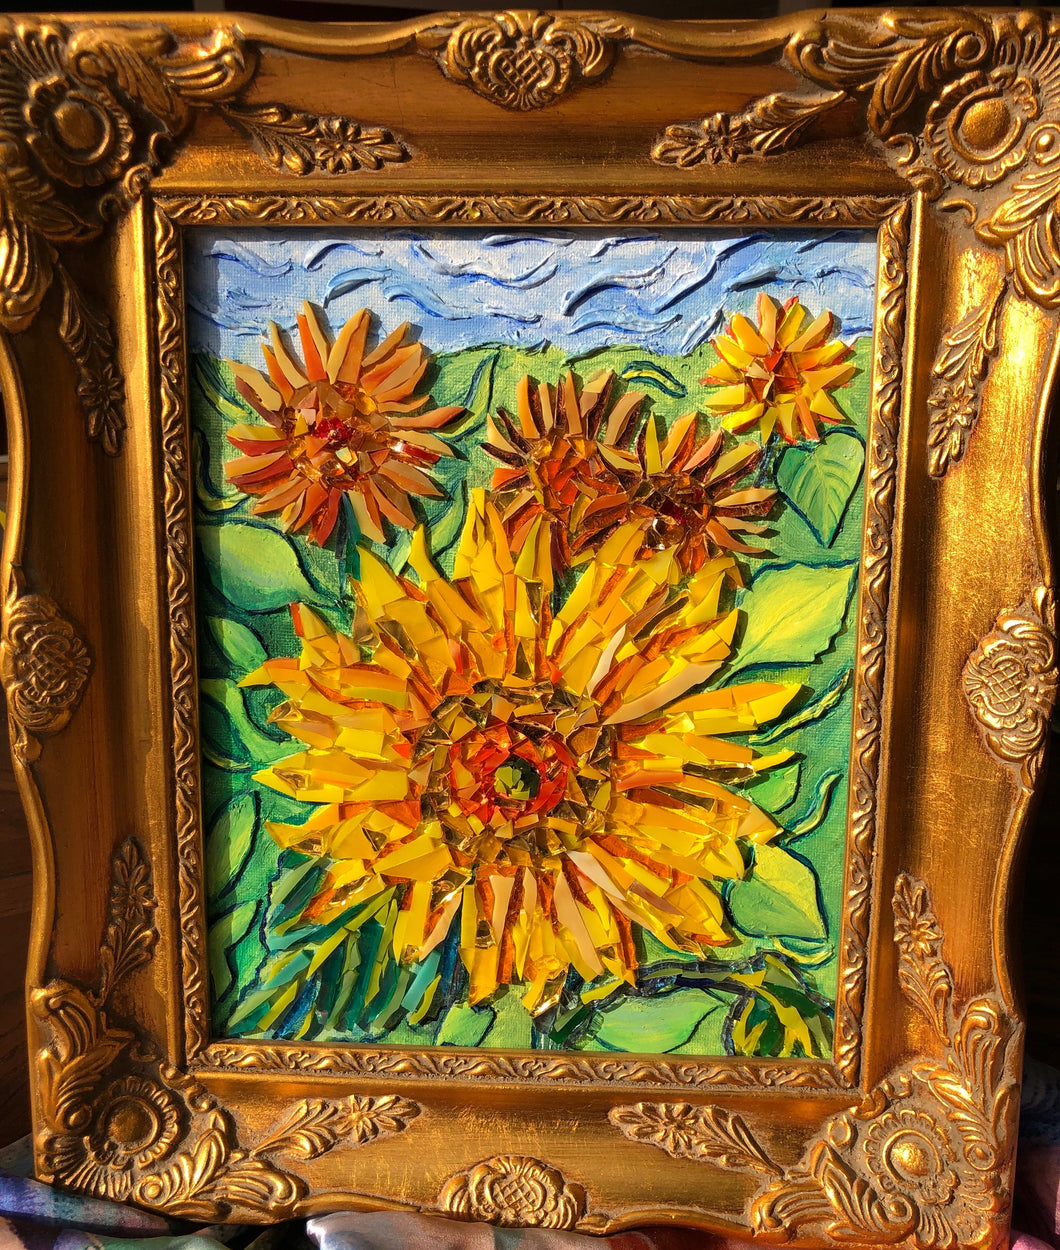 mosaic glass sunflower radiant yellows oranges and reds capture the beauty of a sunflower